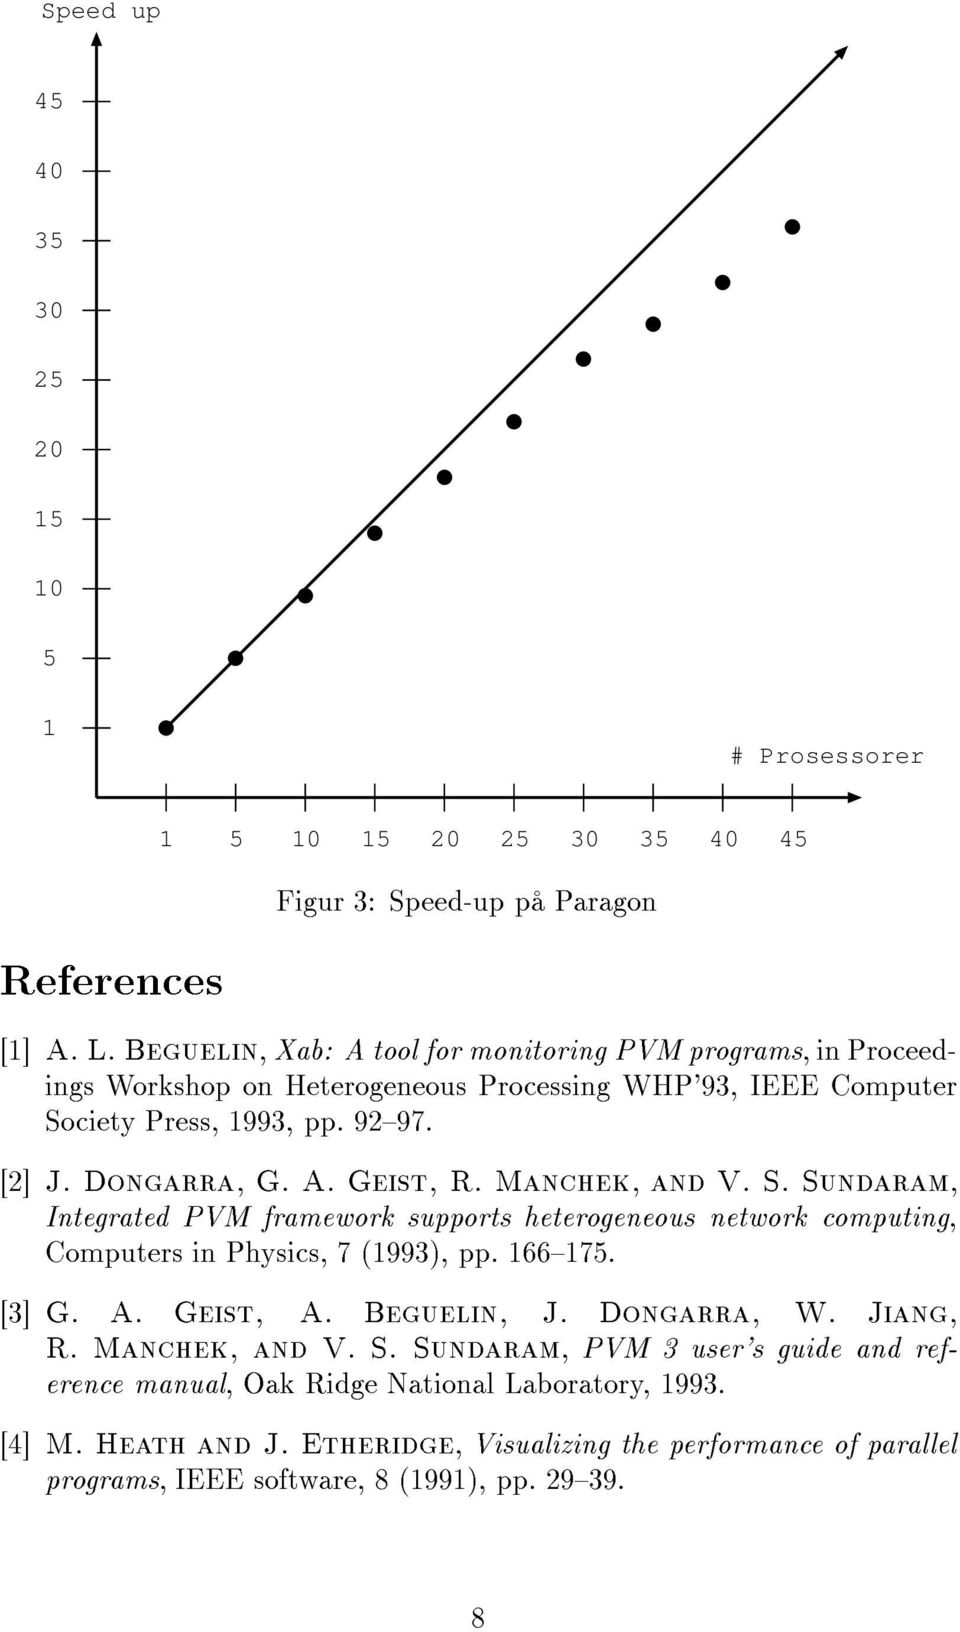 Manchek, and V. S. Sundaram, Integrated PVM framework supports heterogeneous network computing, Computers in Physics, 7 (1993), pp. 166175. [3] G. A. Geist, A. Beguelin, J. Dongarra, W.